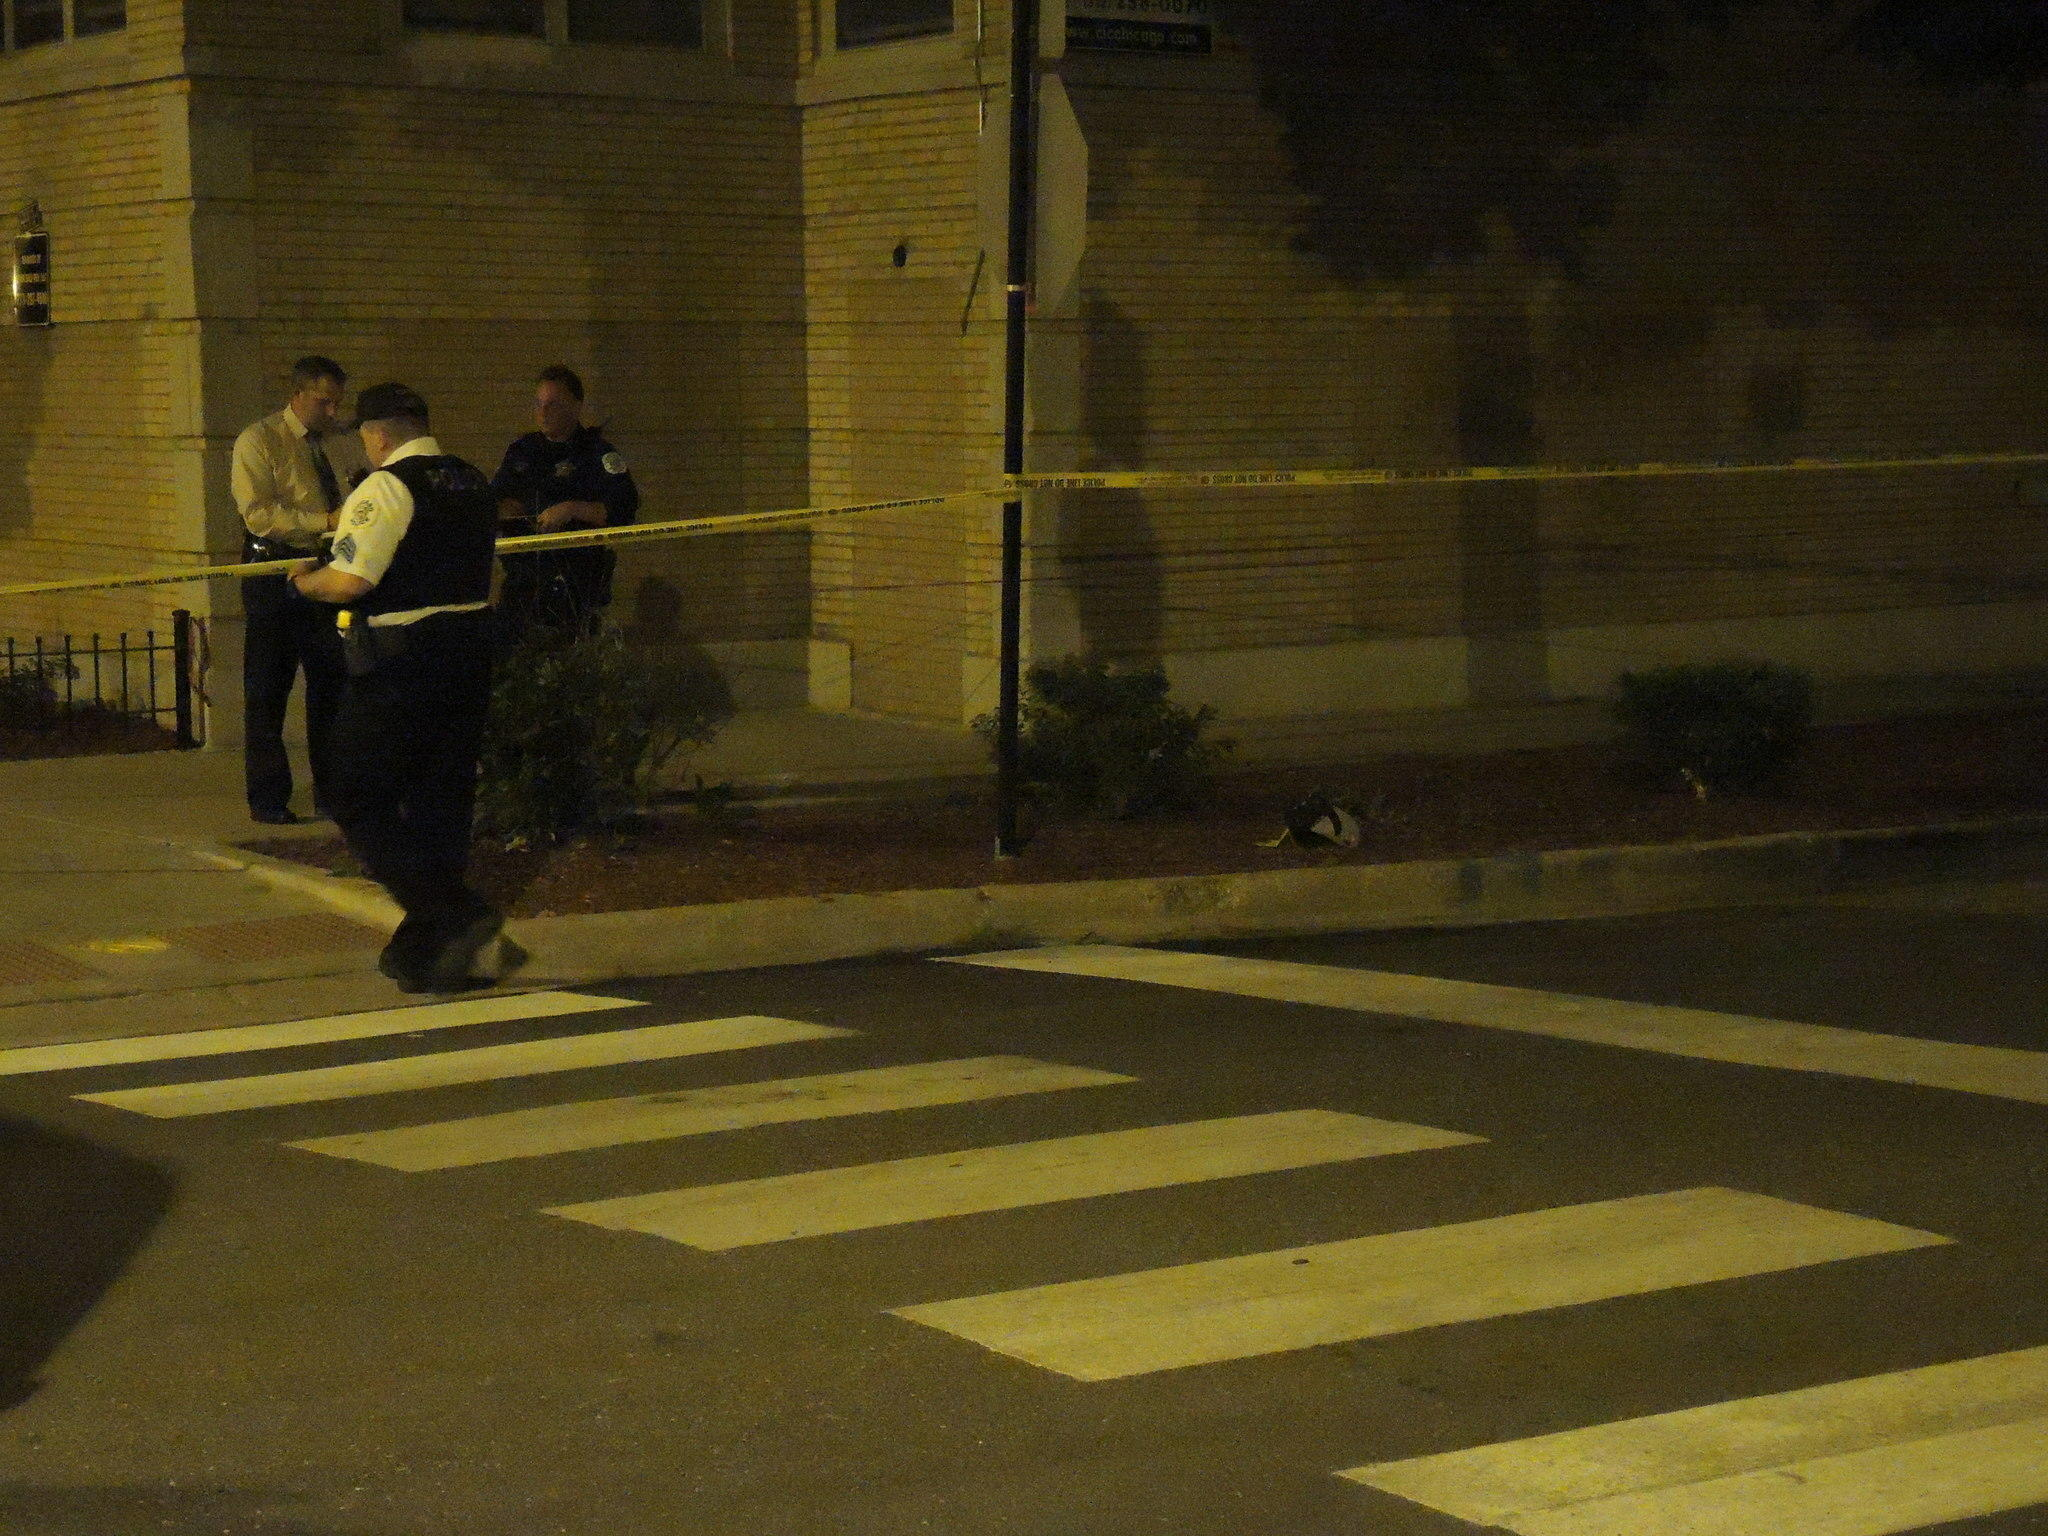 Police investigate the scene where a 14-year-old boy was critically injured by a gunshot wound to the back.